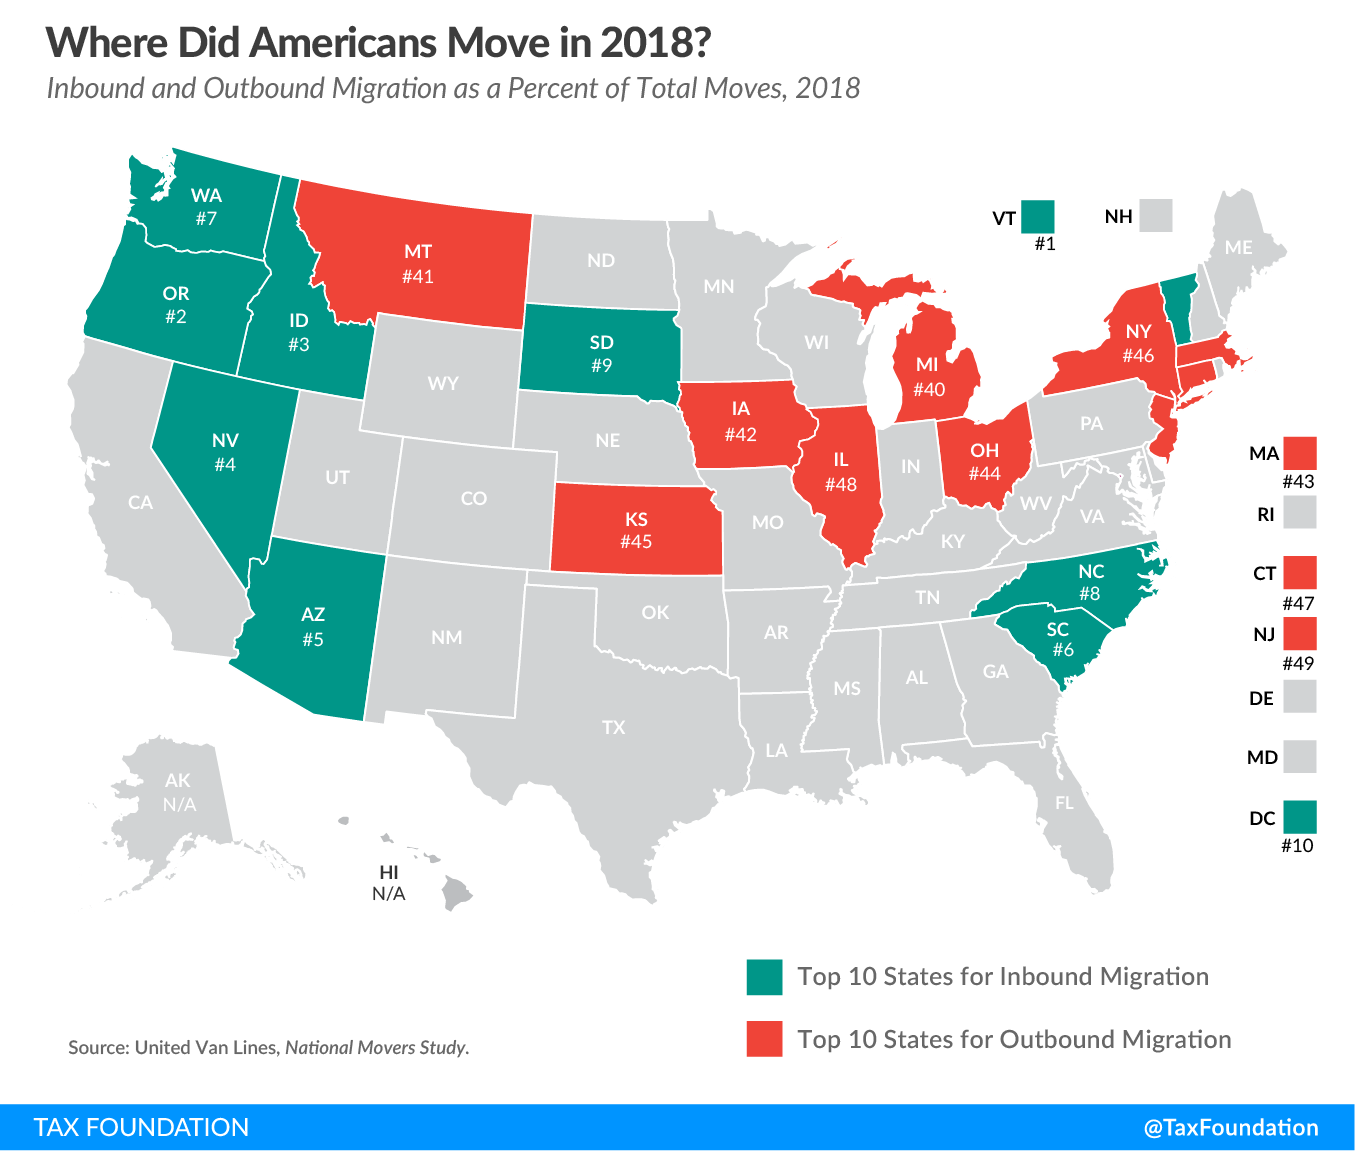 Where did Americans move in 2018? states where people moved out of in 2018. Worst outbound migration states